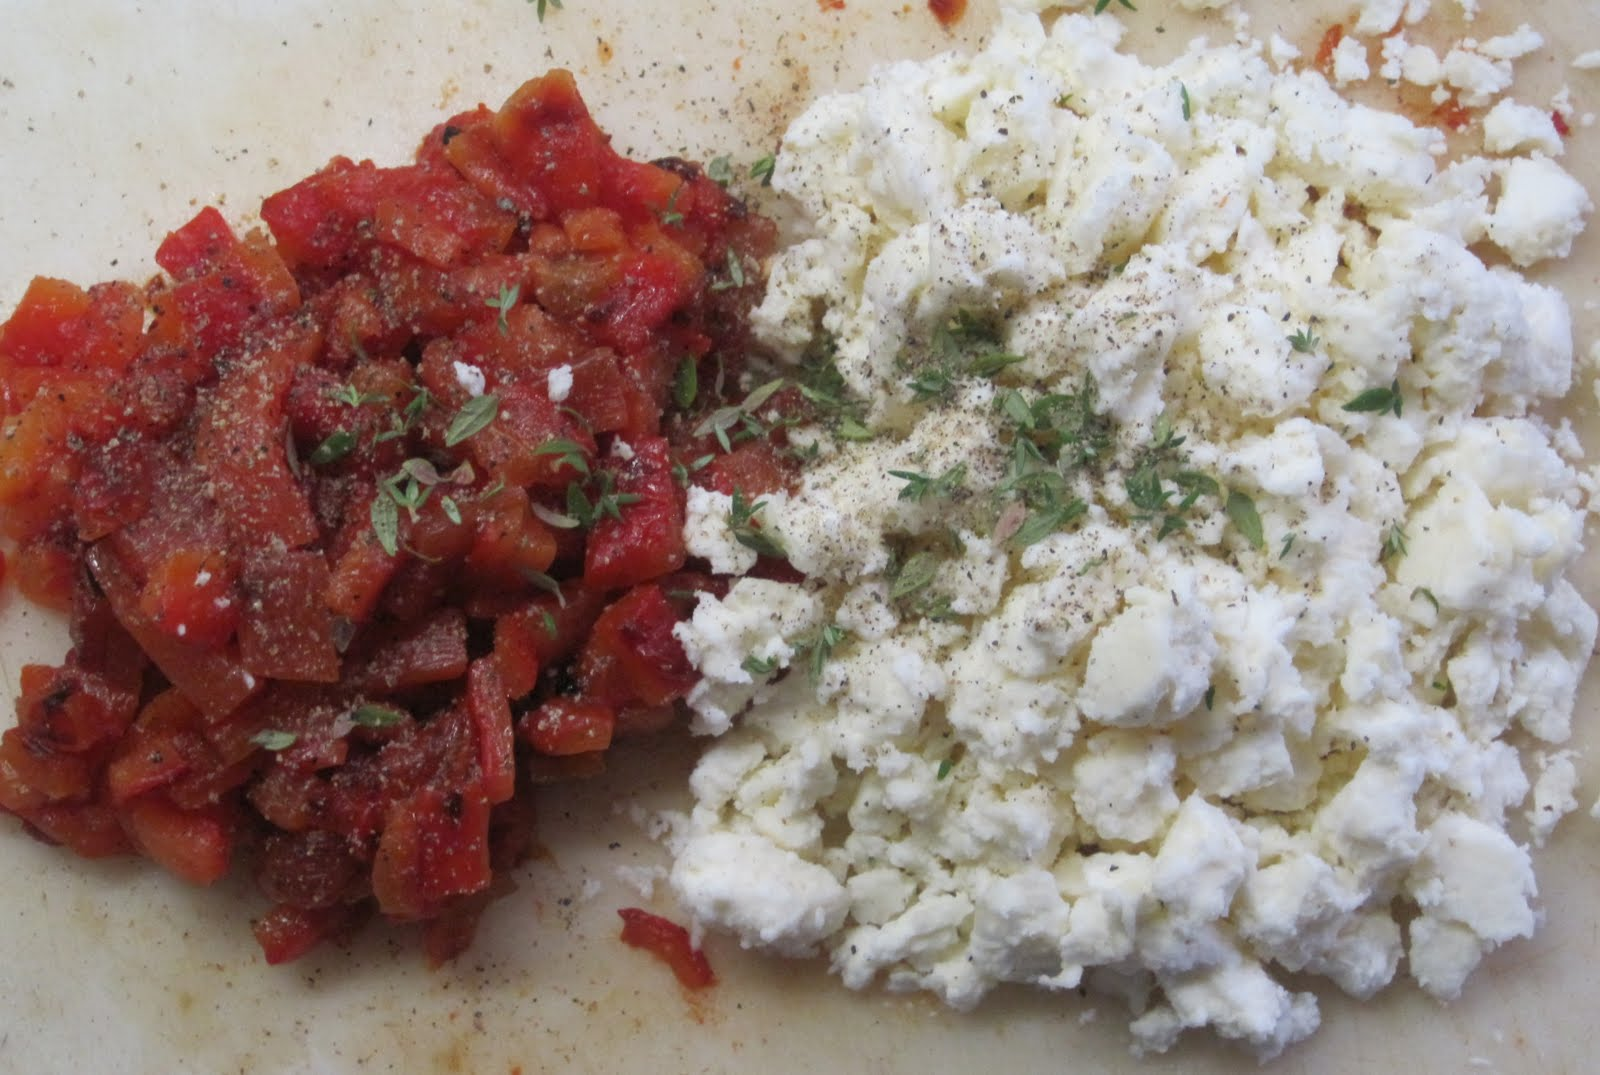 ... Happiness: Zucchini Stuffed with Roasted Red Peppers and Feta Cheese